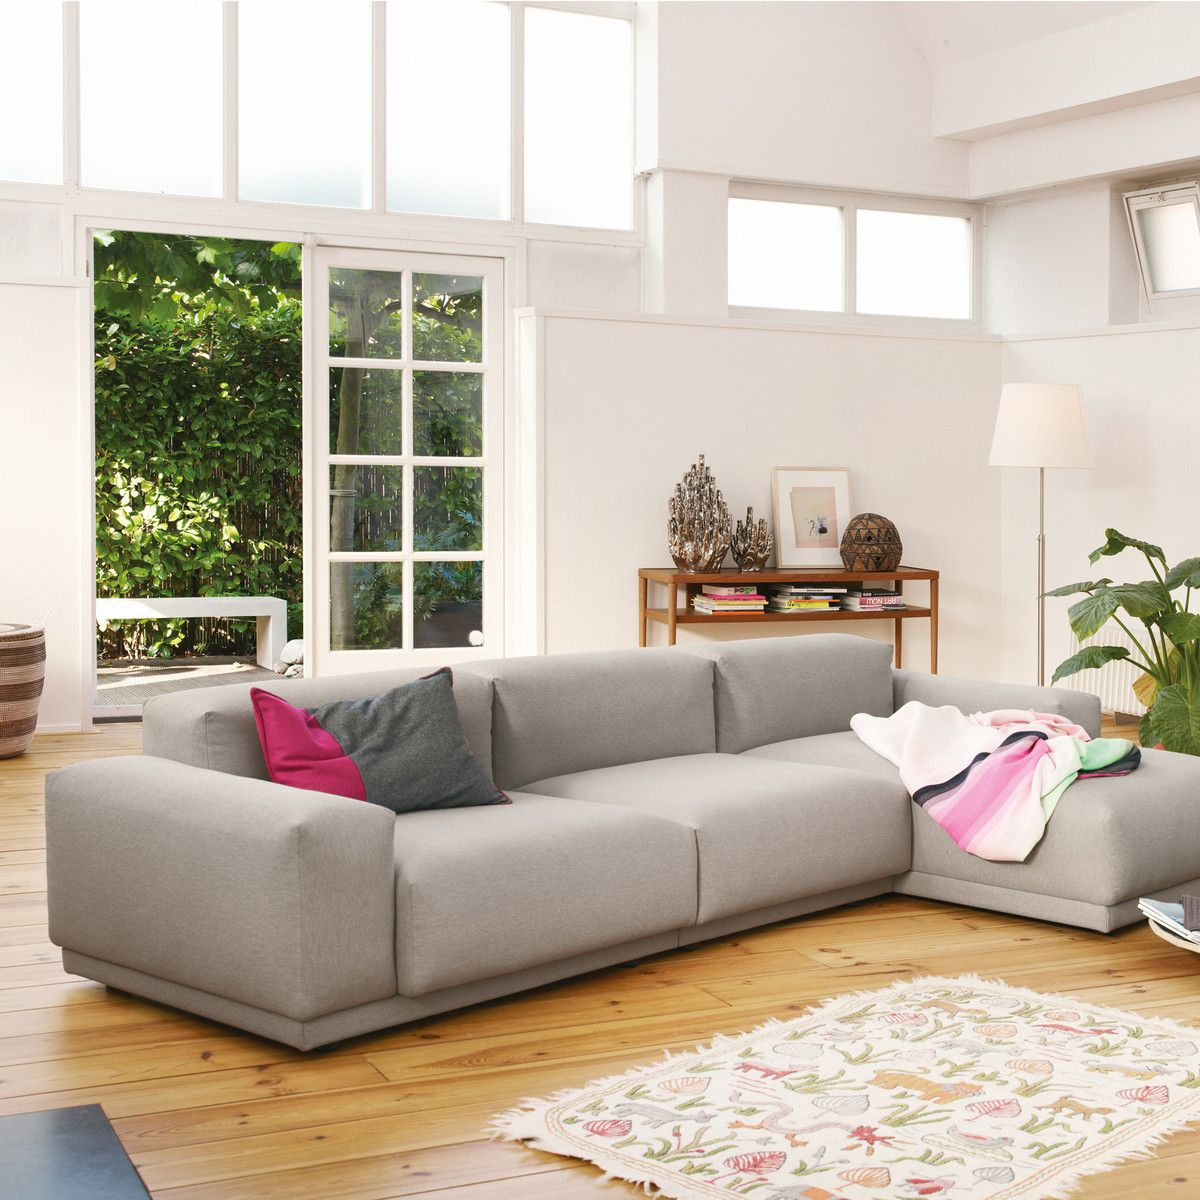 vitra place sofa 3 sitzer wohnzimmer. Black Bedroom Furniture Sets. Home Design Ideas